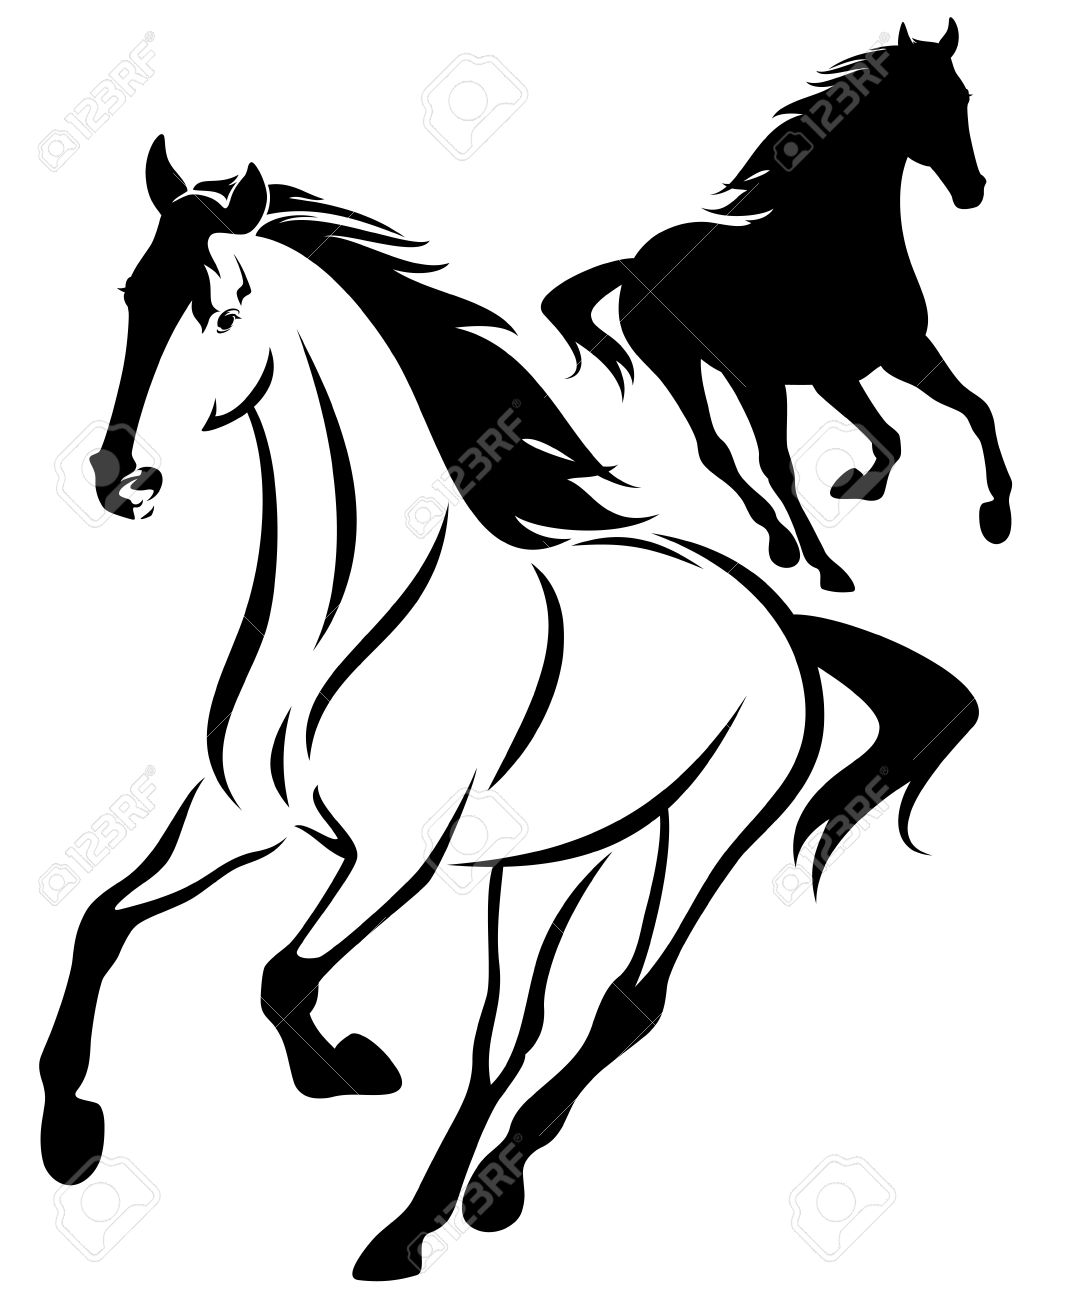 horse black and white outline and silhouette - running animal design - 28247581